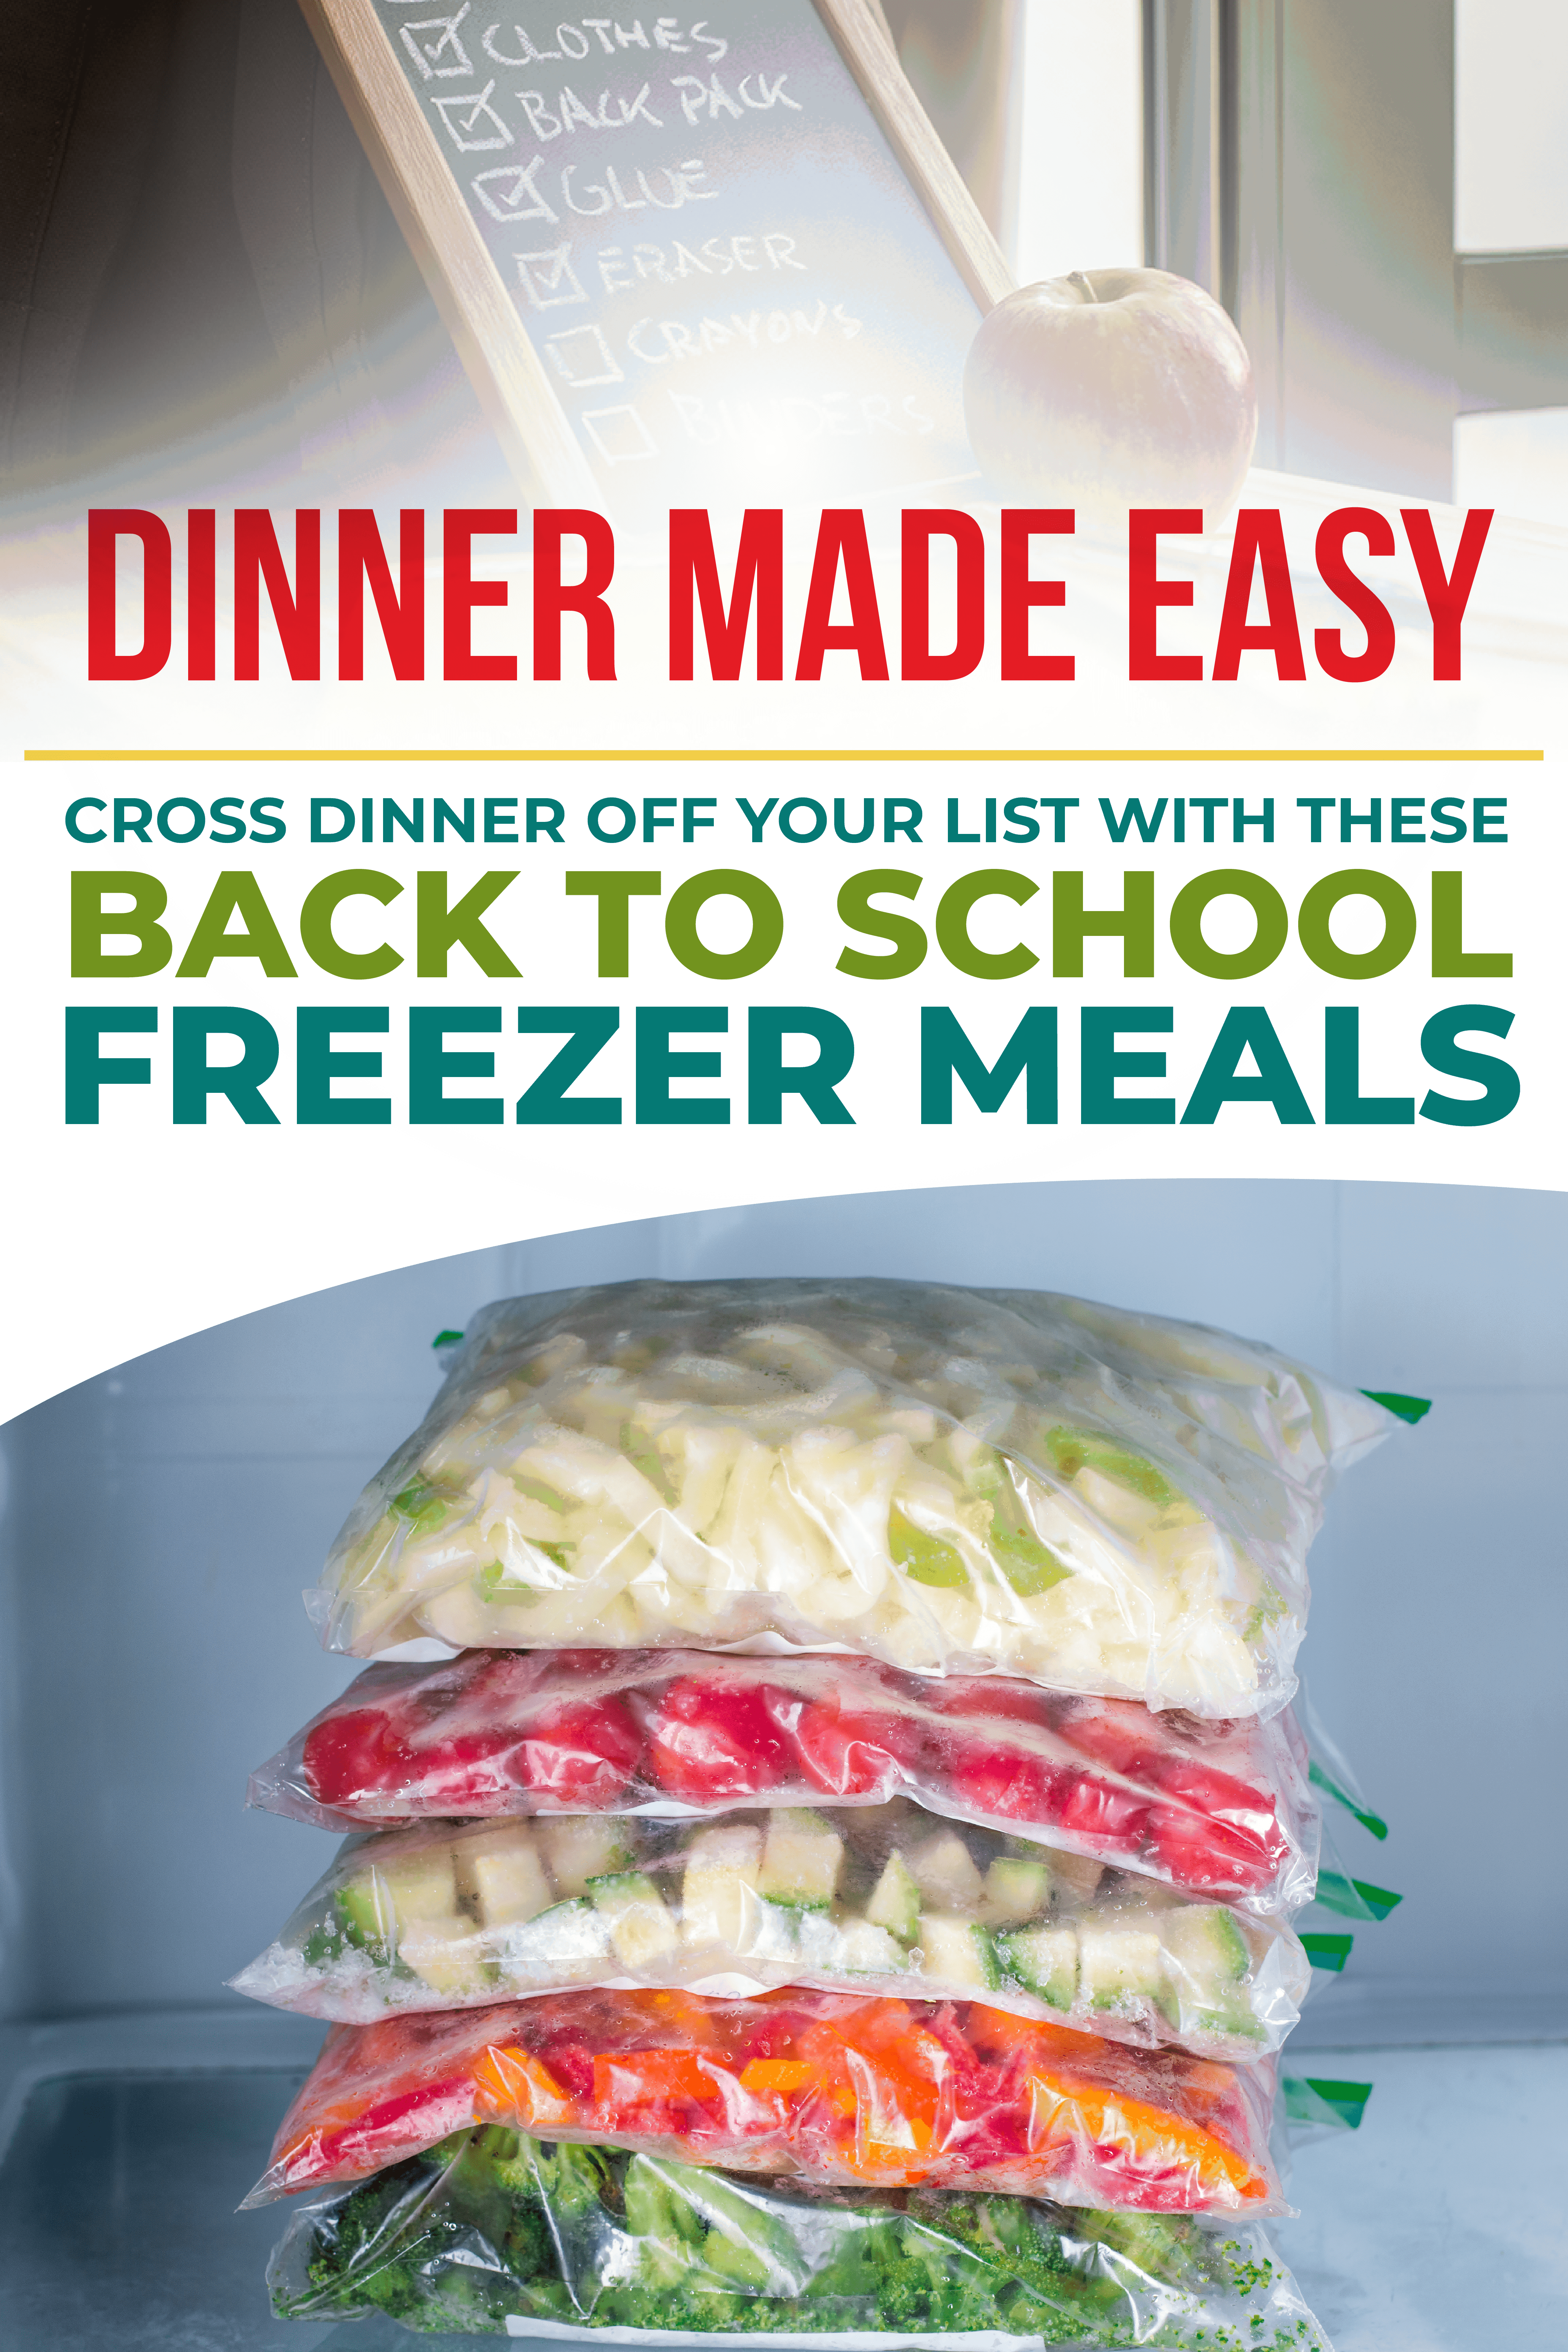 Years of dealing with the stress of getting home from work late and scrambling to thaw something out that is nutritious and delicious for the family prompted me to try something new. I decided on Freezer Meal Planning to see how much time, stress, and money it would actually save me. #freezermeals #mealplanning #mealprep #backtoschool